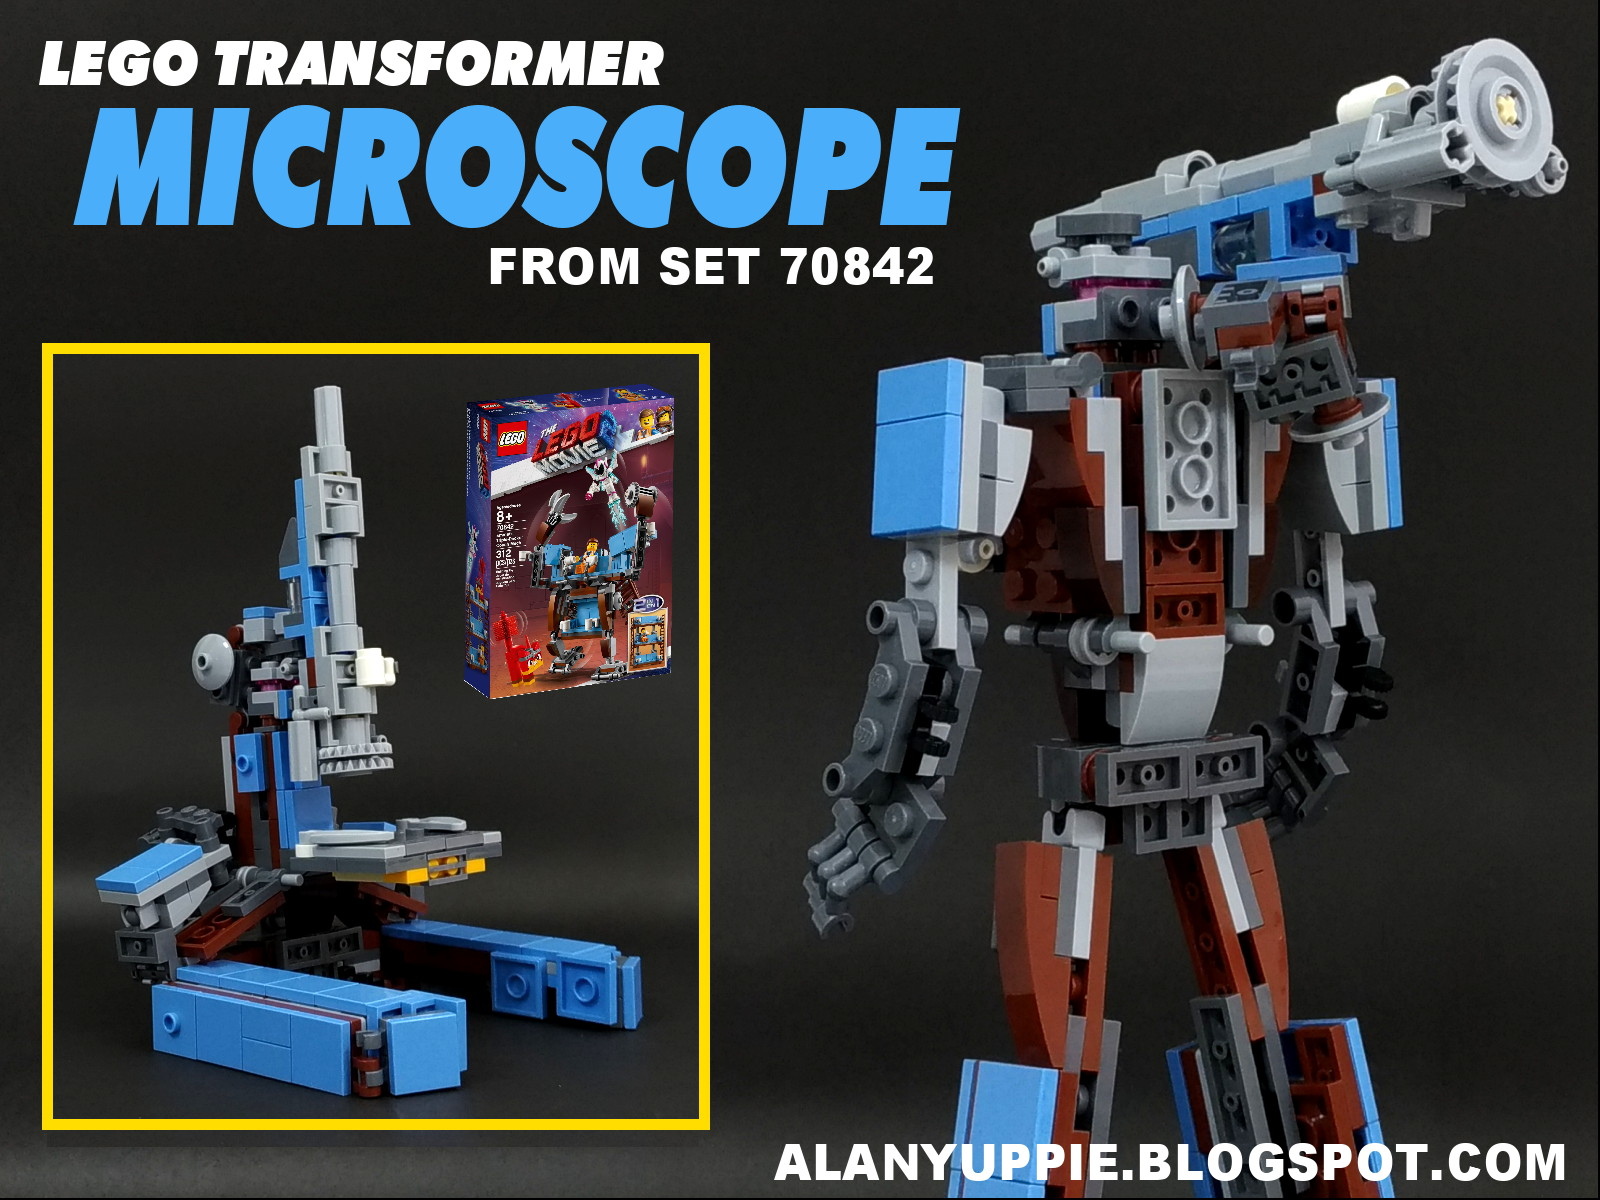 Alanyuppie's LEGO Transformers: Instructions for LEGO